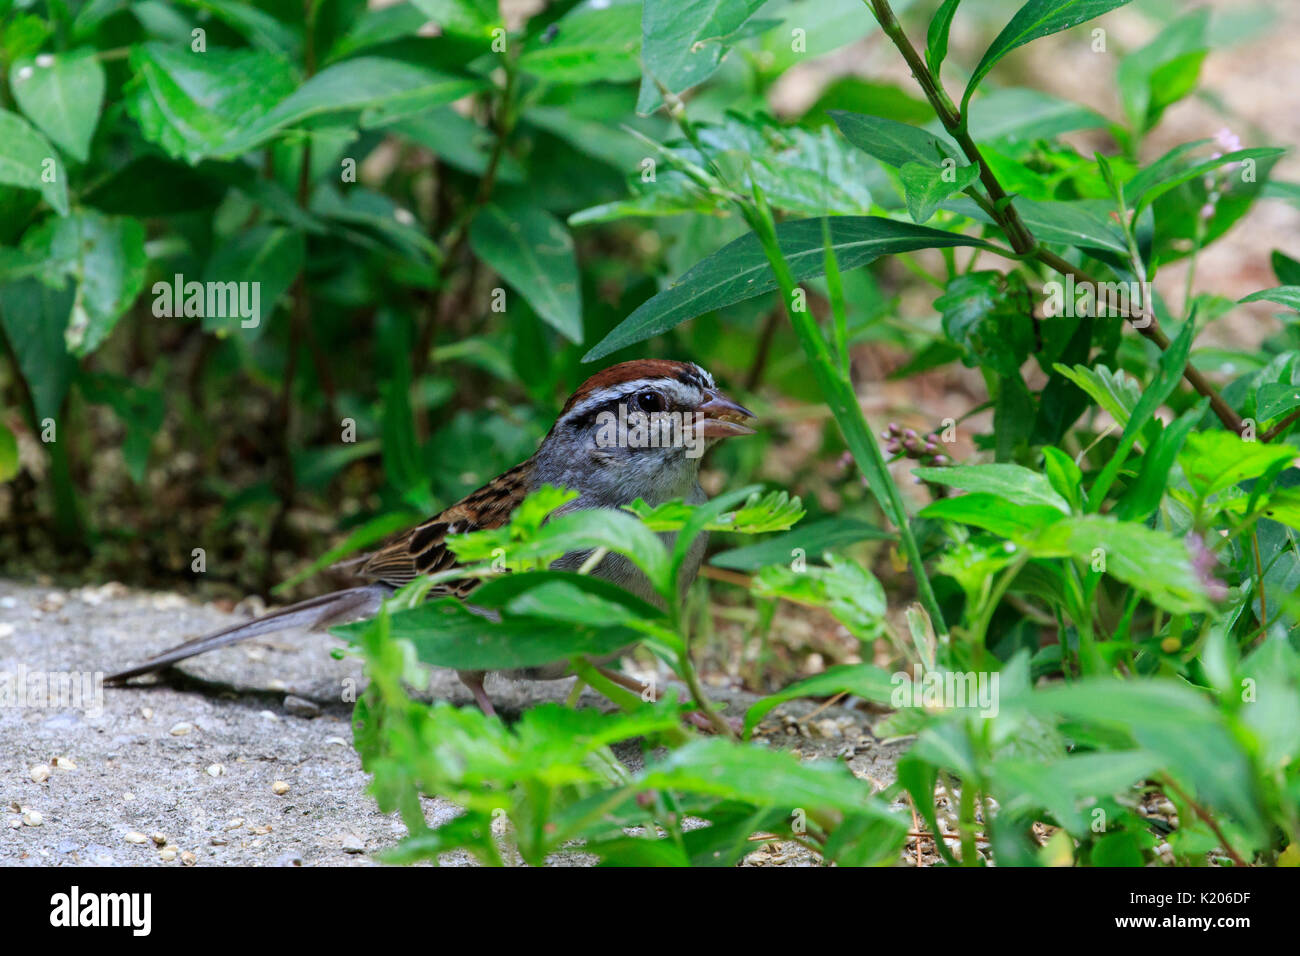 Chipping sparrow (Spizella passerina) on the ground - Stock Image